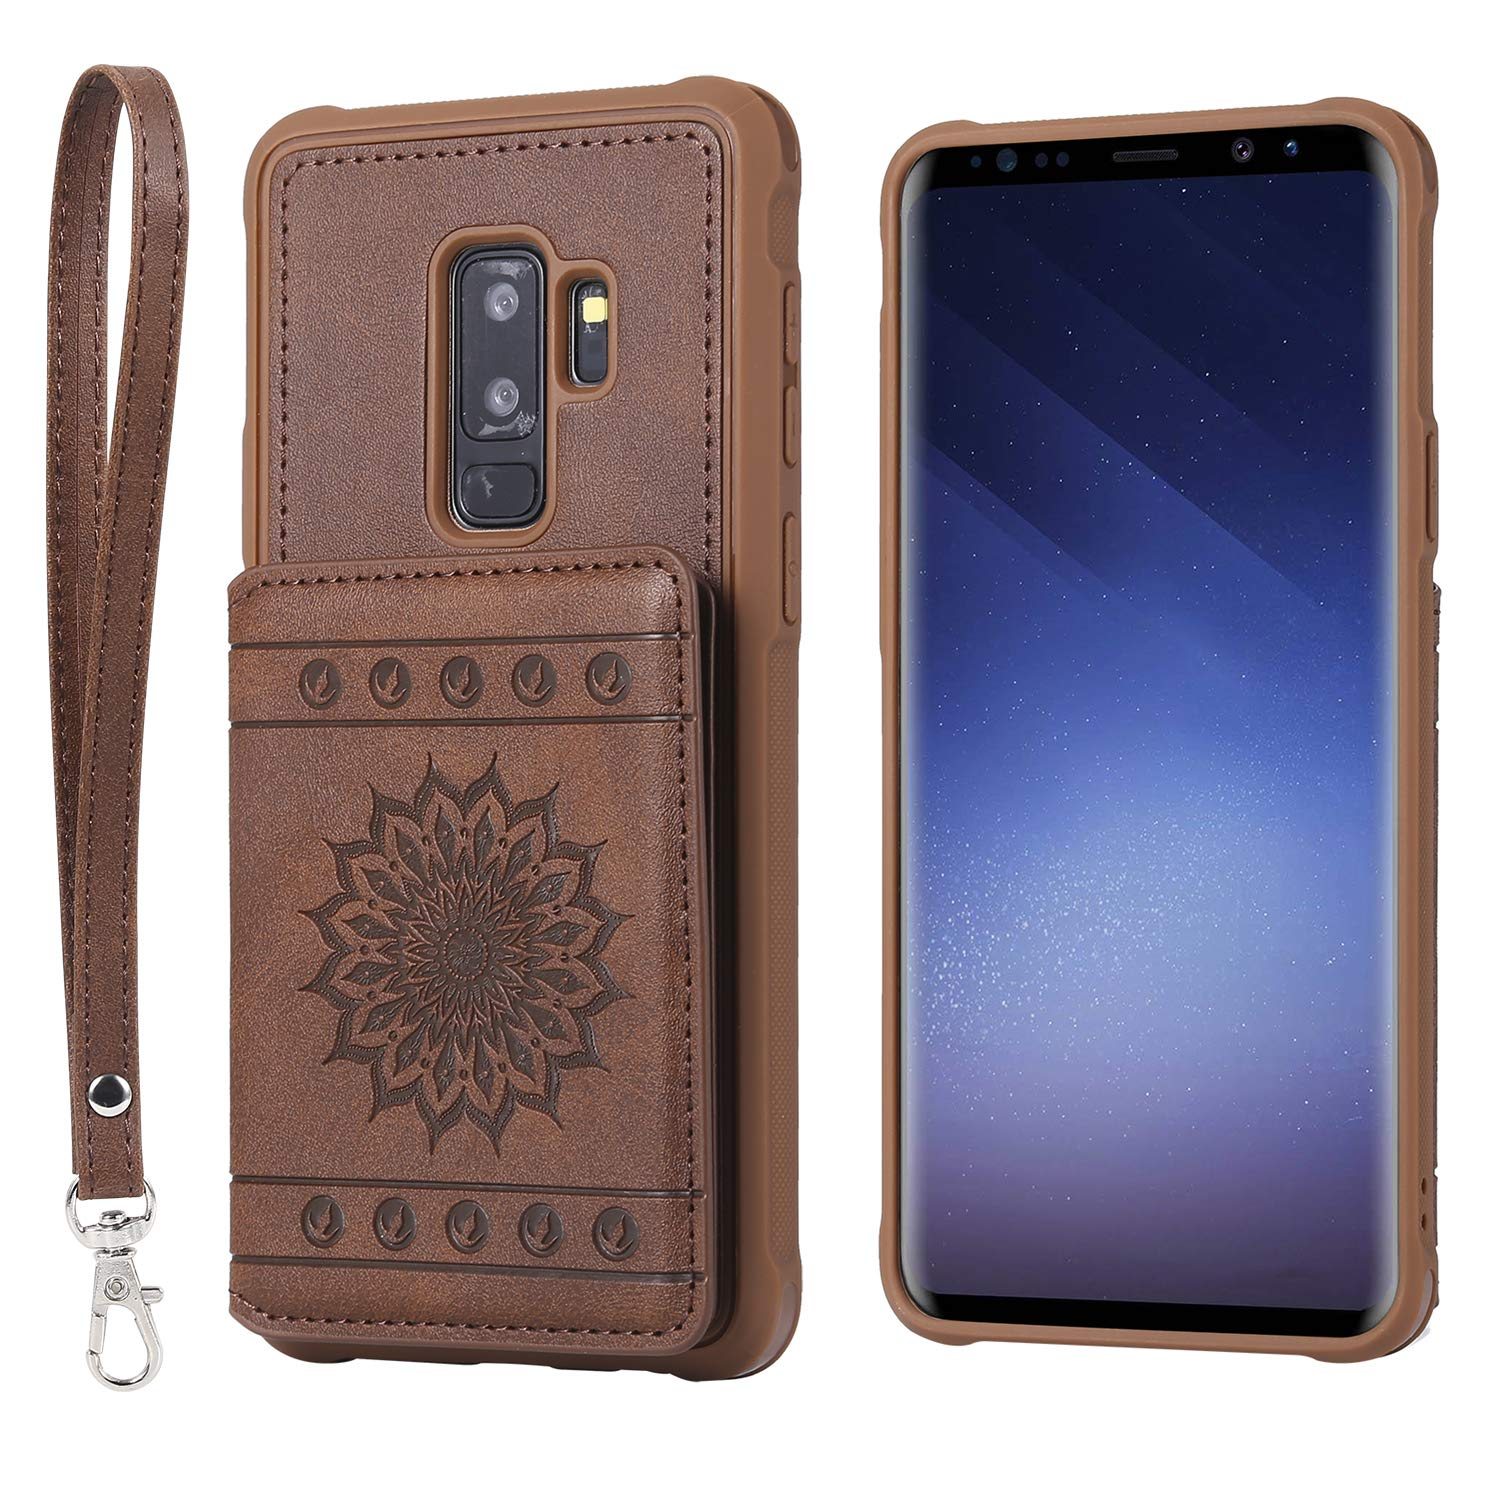 Shinyzone Slim Fit Back Wallet Case for Samsung Galaxy S9 with Card Holder, Embossed Sunflower Pattern PU Leather Flip Cover with Magnetic Stand Function with Detachable Lanyard, Black